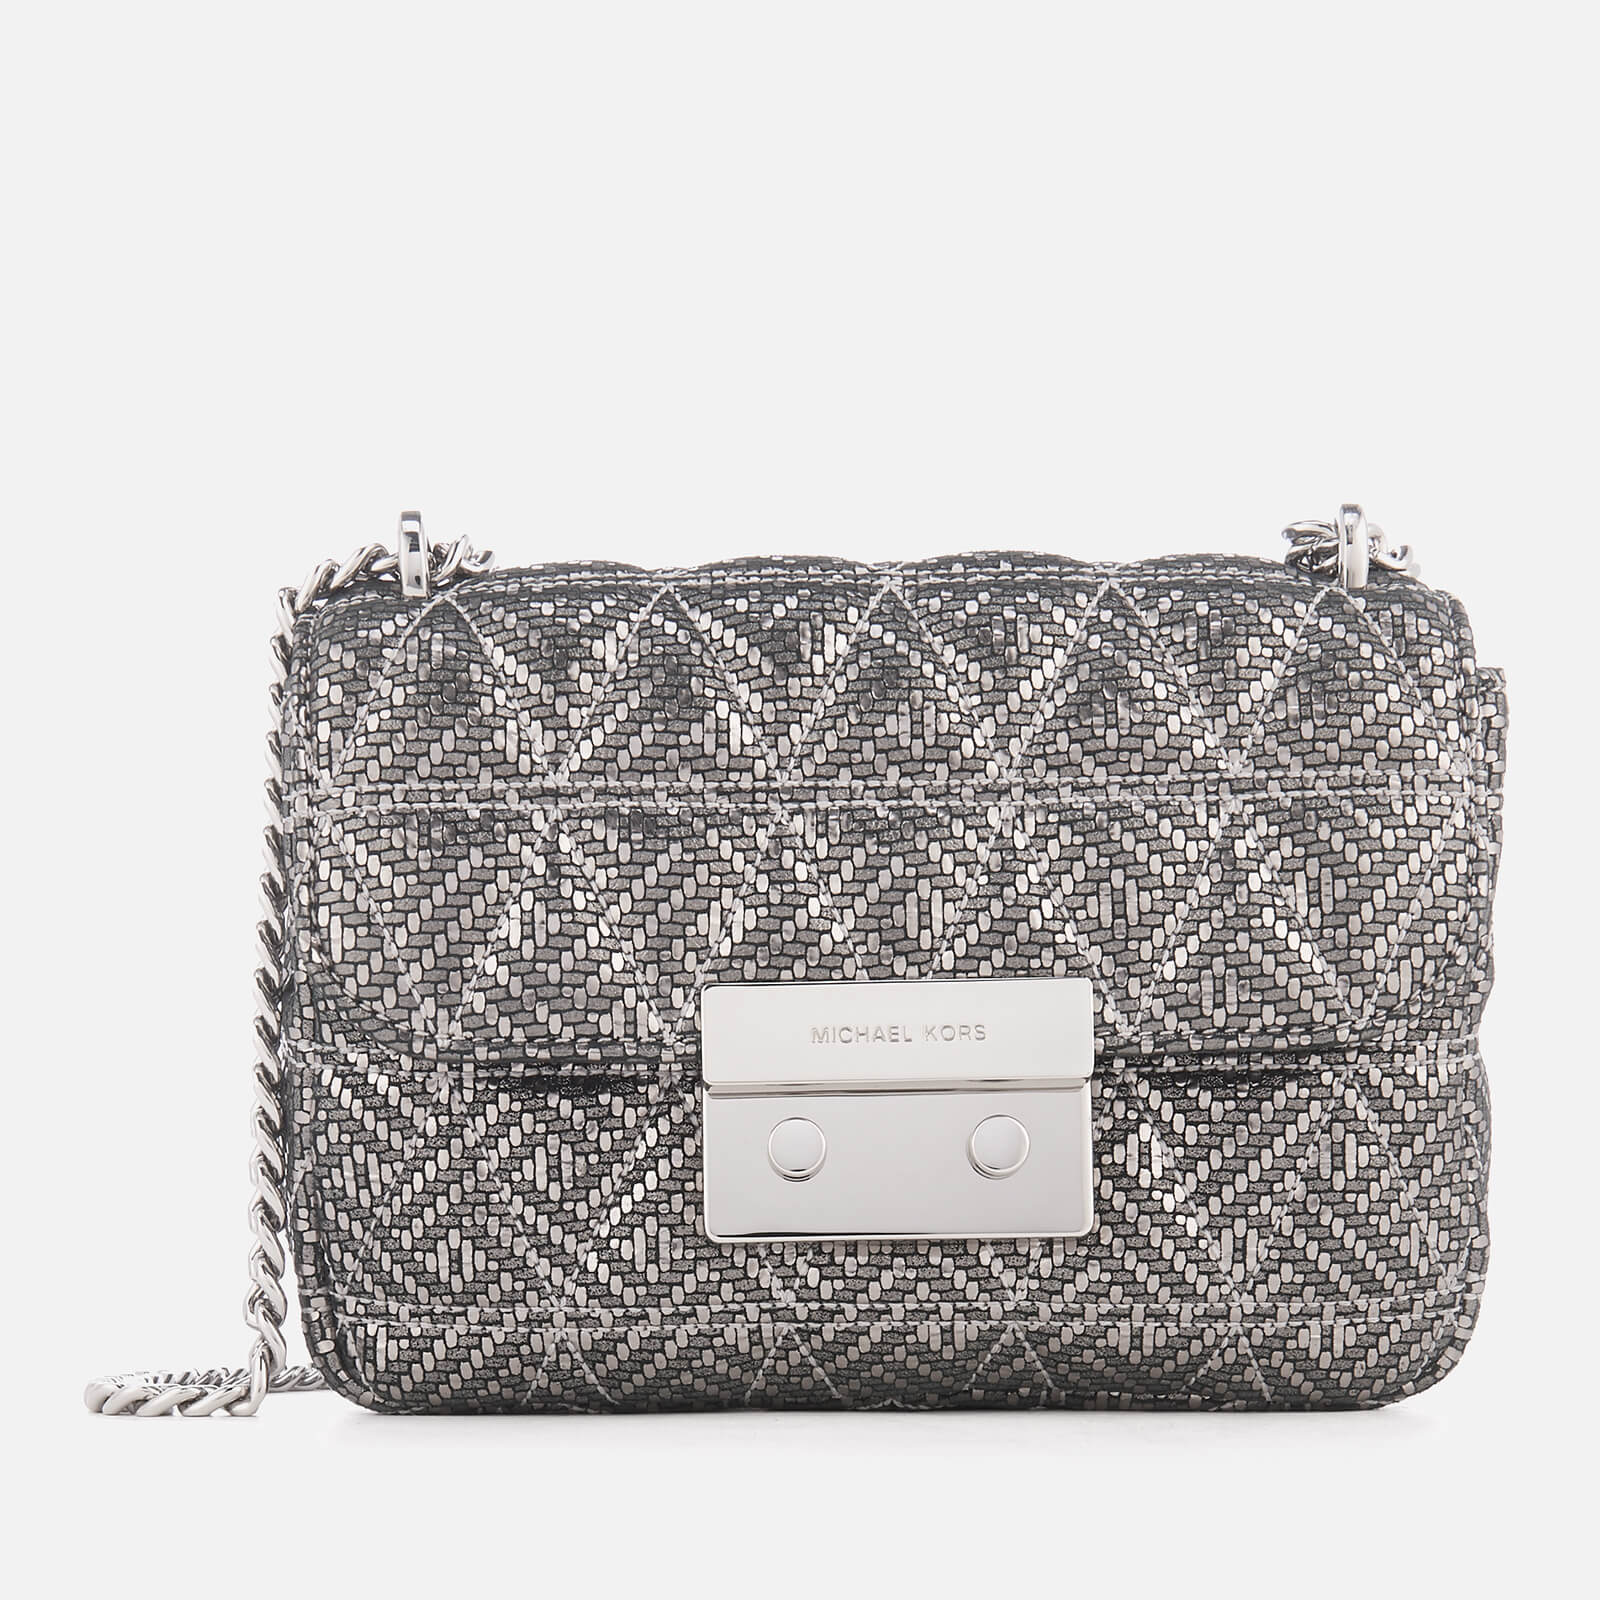 5811ca7e1f07 MICHAEL MICHAEL KORS Women's Sloan Small Chain Shoulder Bag - Silver - Free  UK Delivery over £50